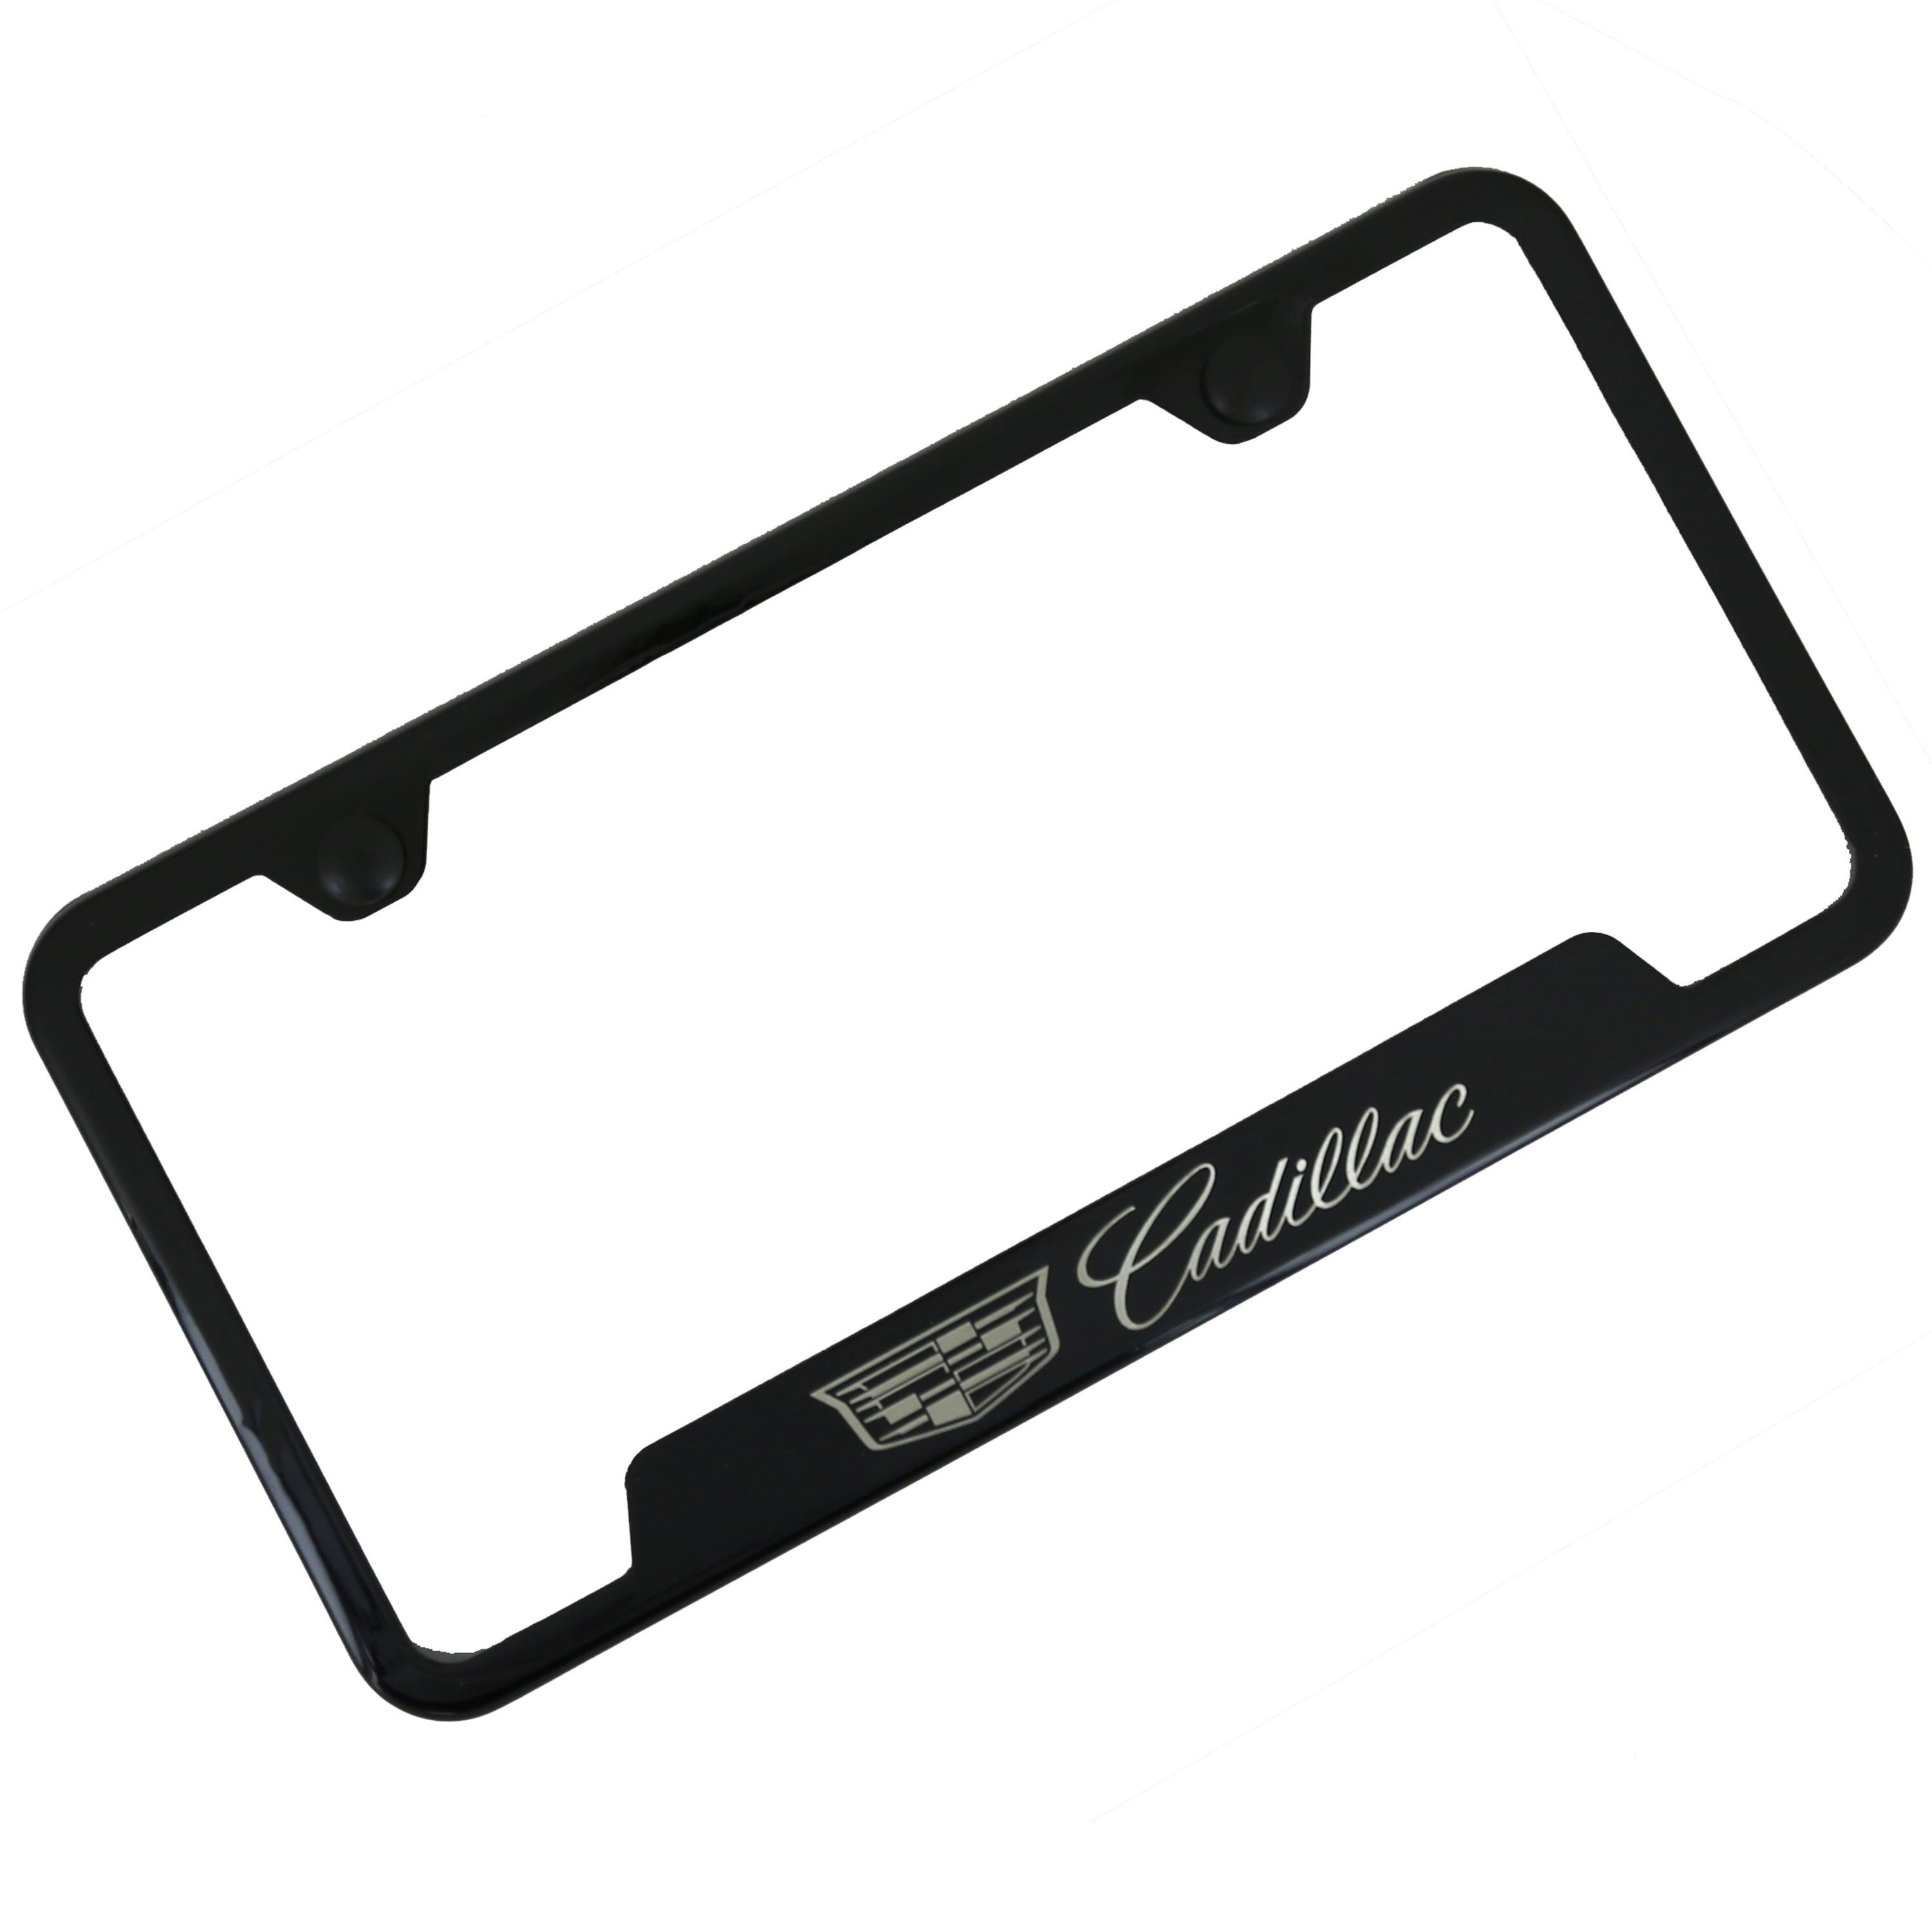 Cadillac New Logo Cut Out License Plate Frame (Black) - Custom Werks